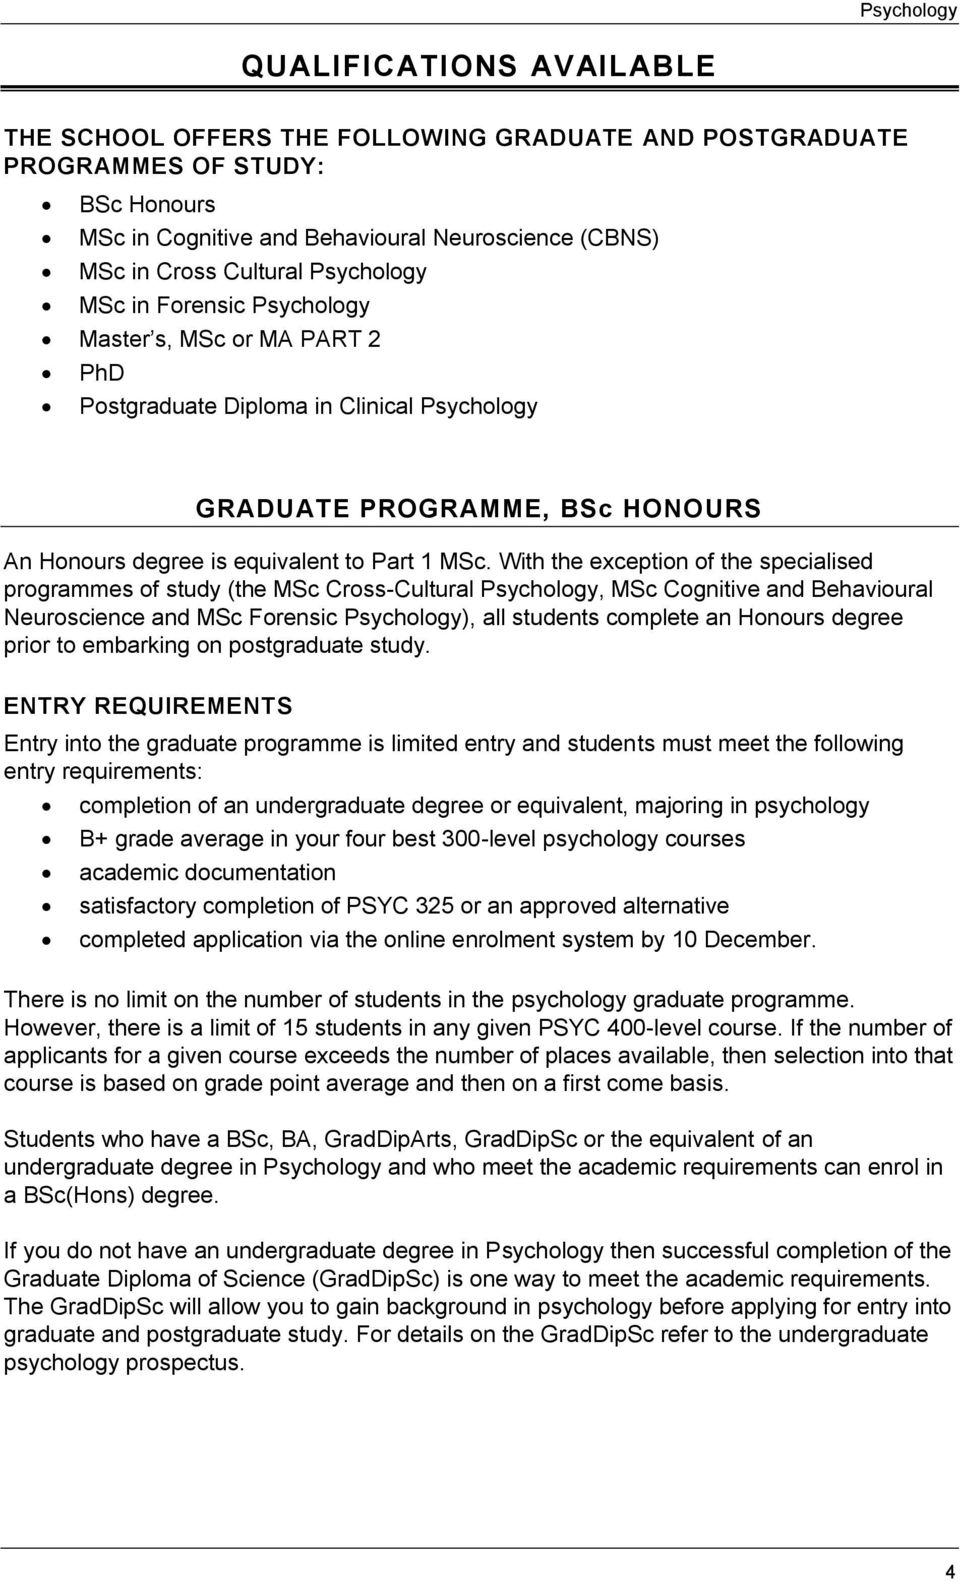 With the exception of the specialised programmes of study (the MSc Cross-Cultural Psychology, MSc Cognitive and Behavioural Neuroscience and MSc Forensic Psychology), all students complete an Honours